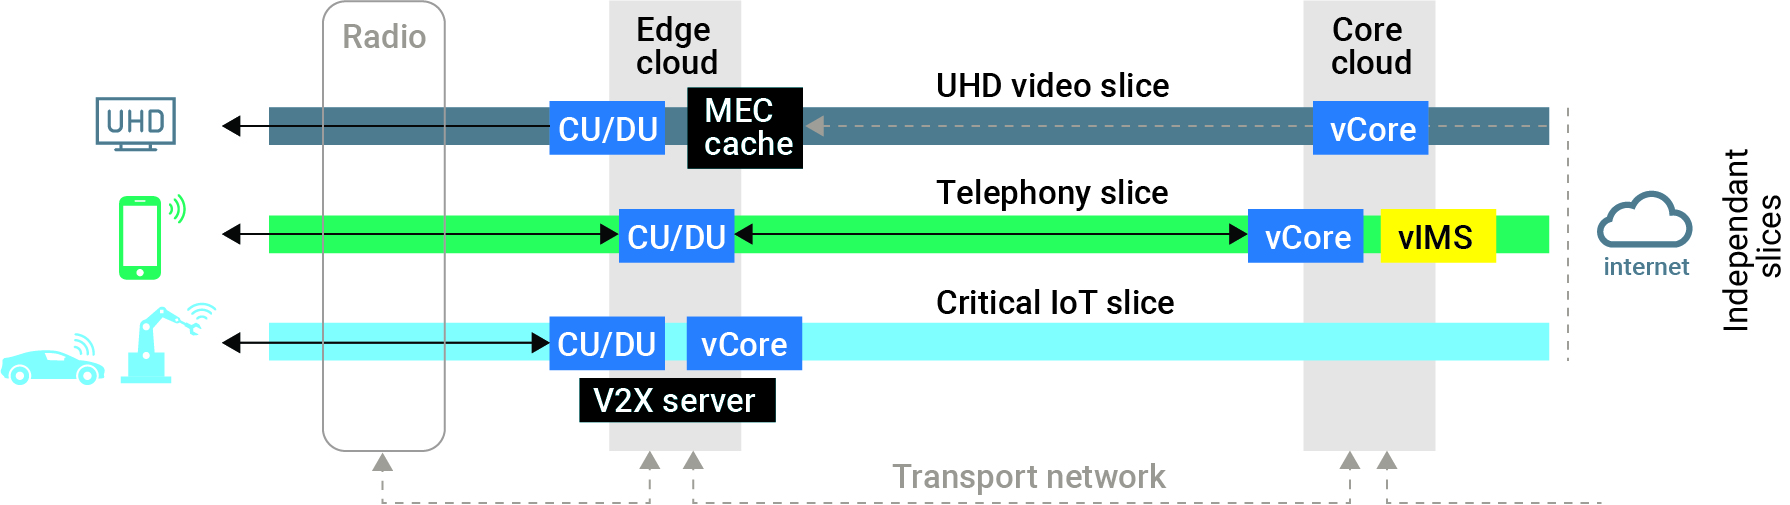 5G network slicing requires optimal domain-specific and cross-domain, end-to-end performance on top of the underlying hybrid infrastructure